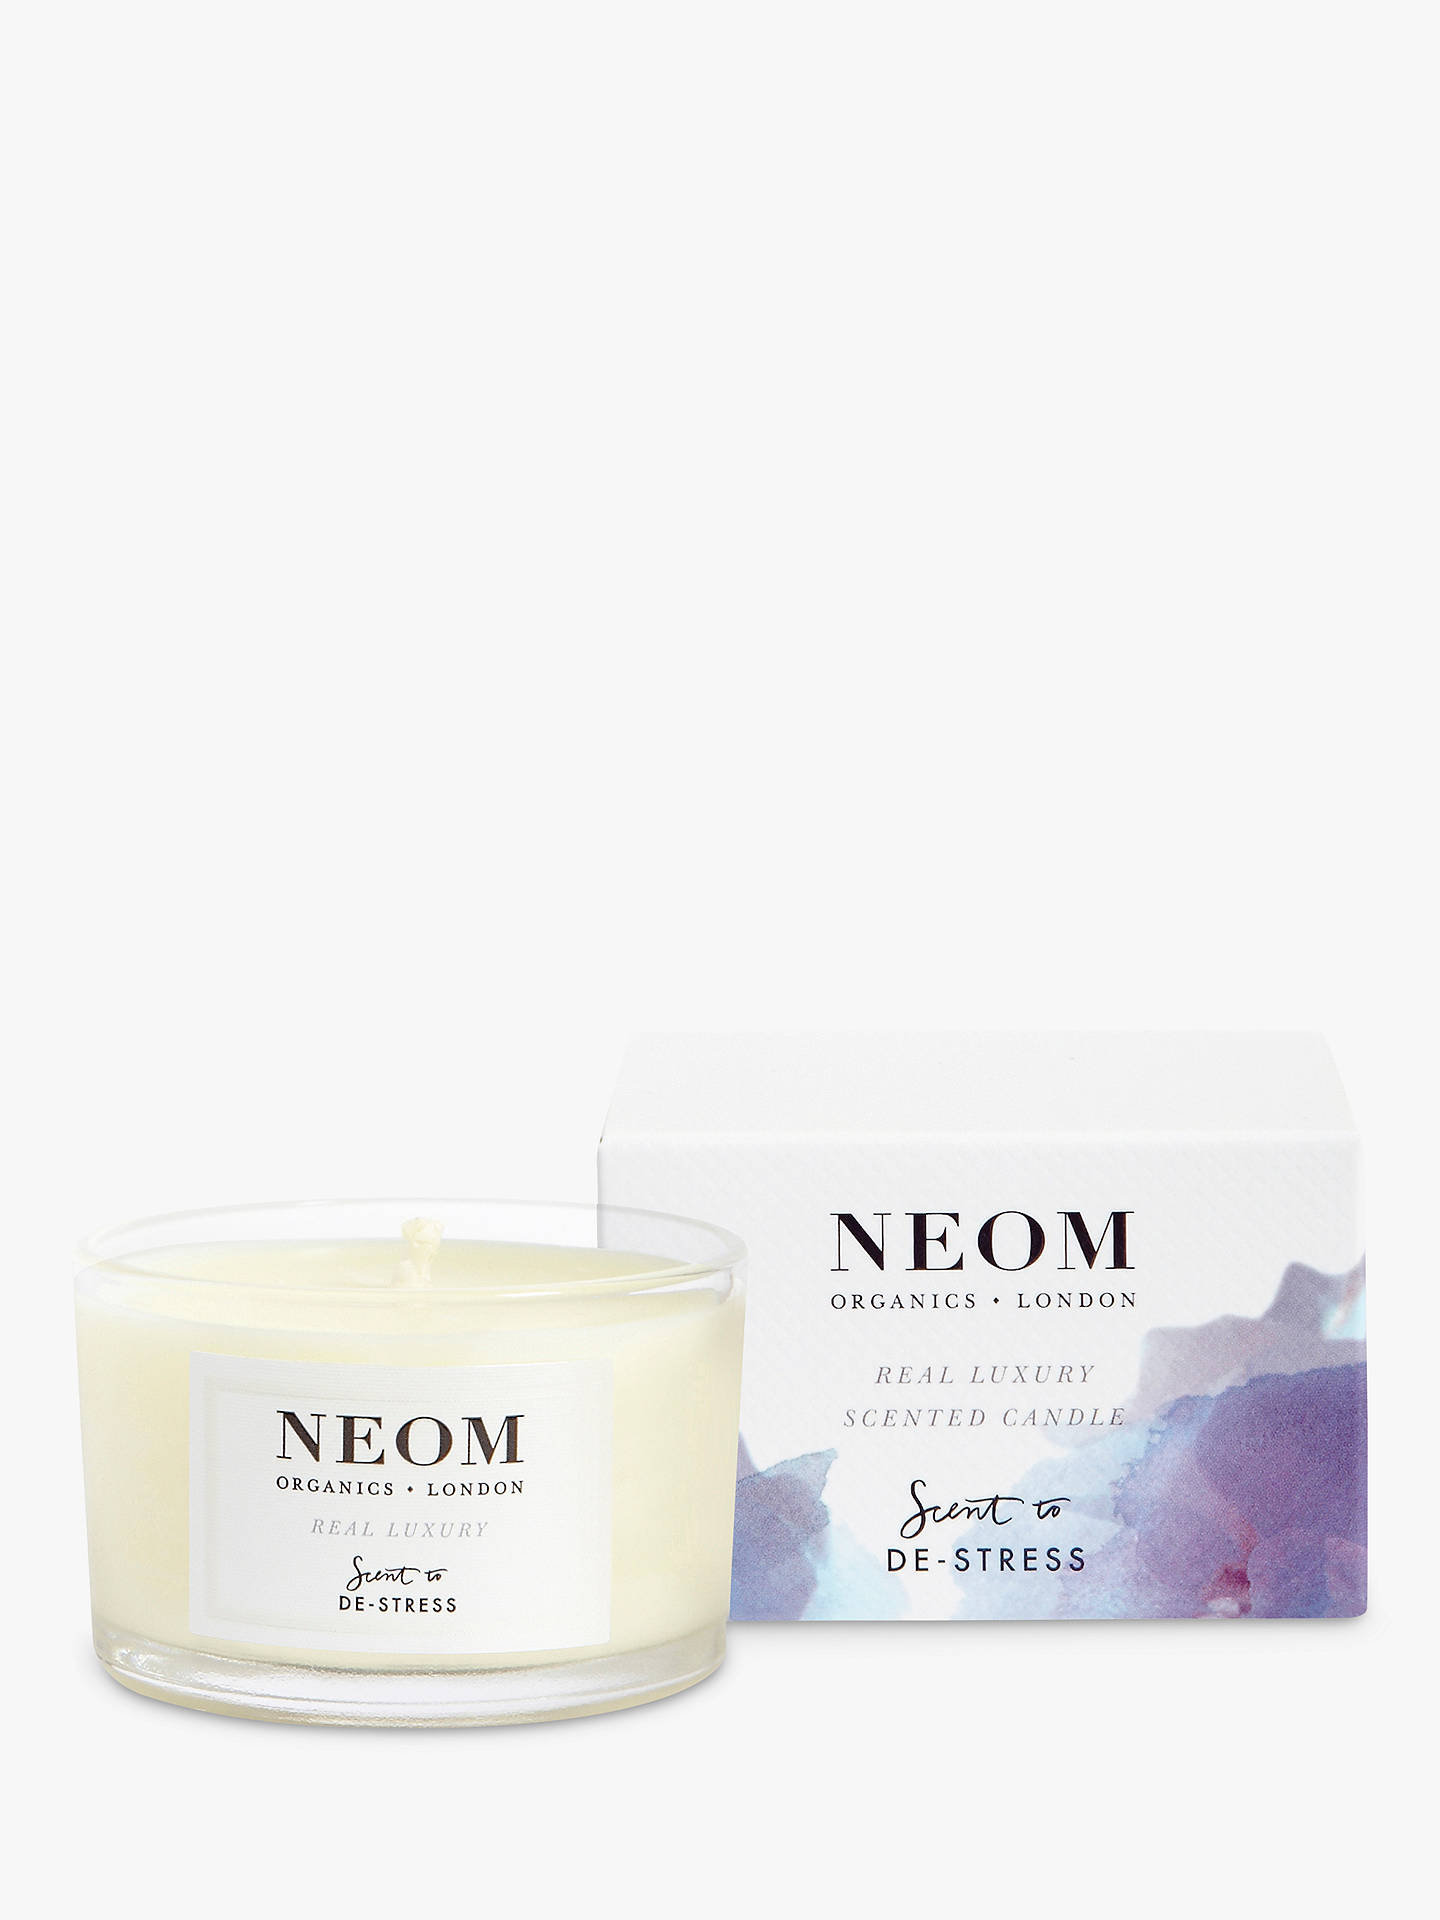 Buy Neom Organics London Real Luxury Travel Scented Candle Online at johnlewis.com